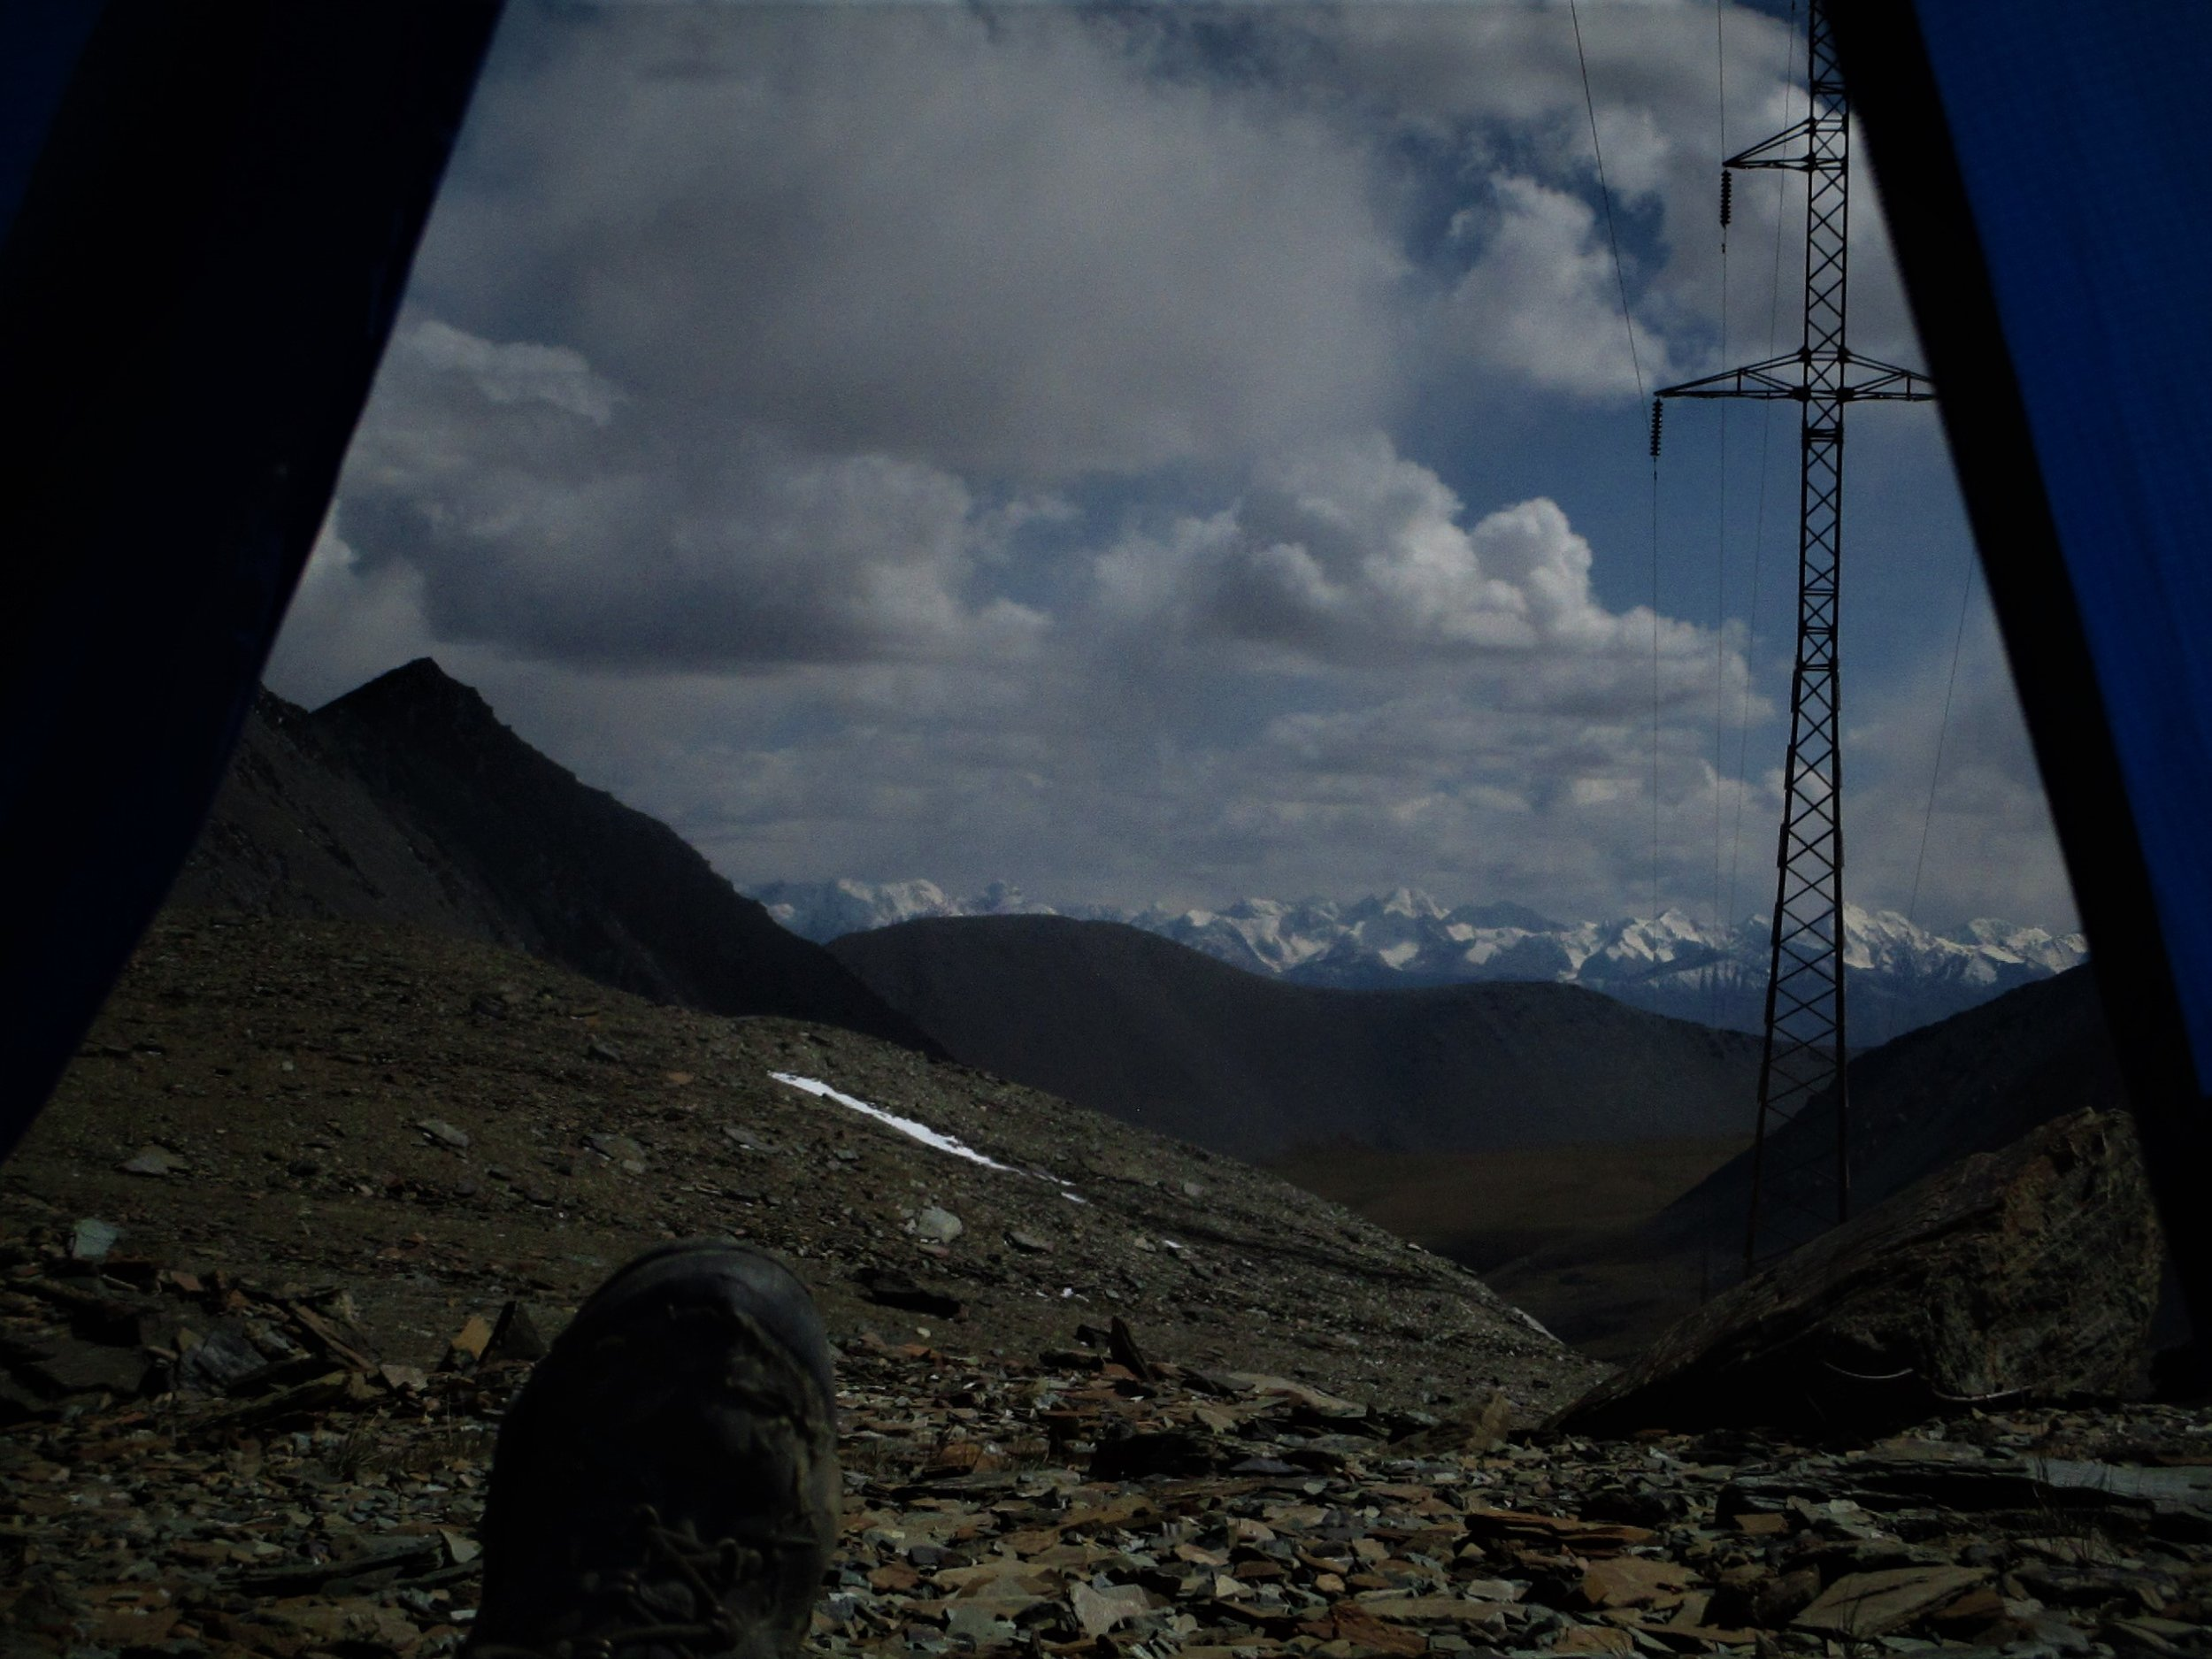 Campsite  on the Suek pass 4230 m- looking out the Tent door into the Main Tien Shan mountains close to the Chinese border. The night was surprisingly mild